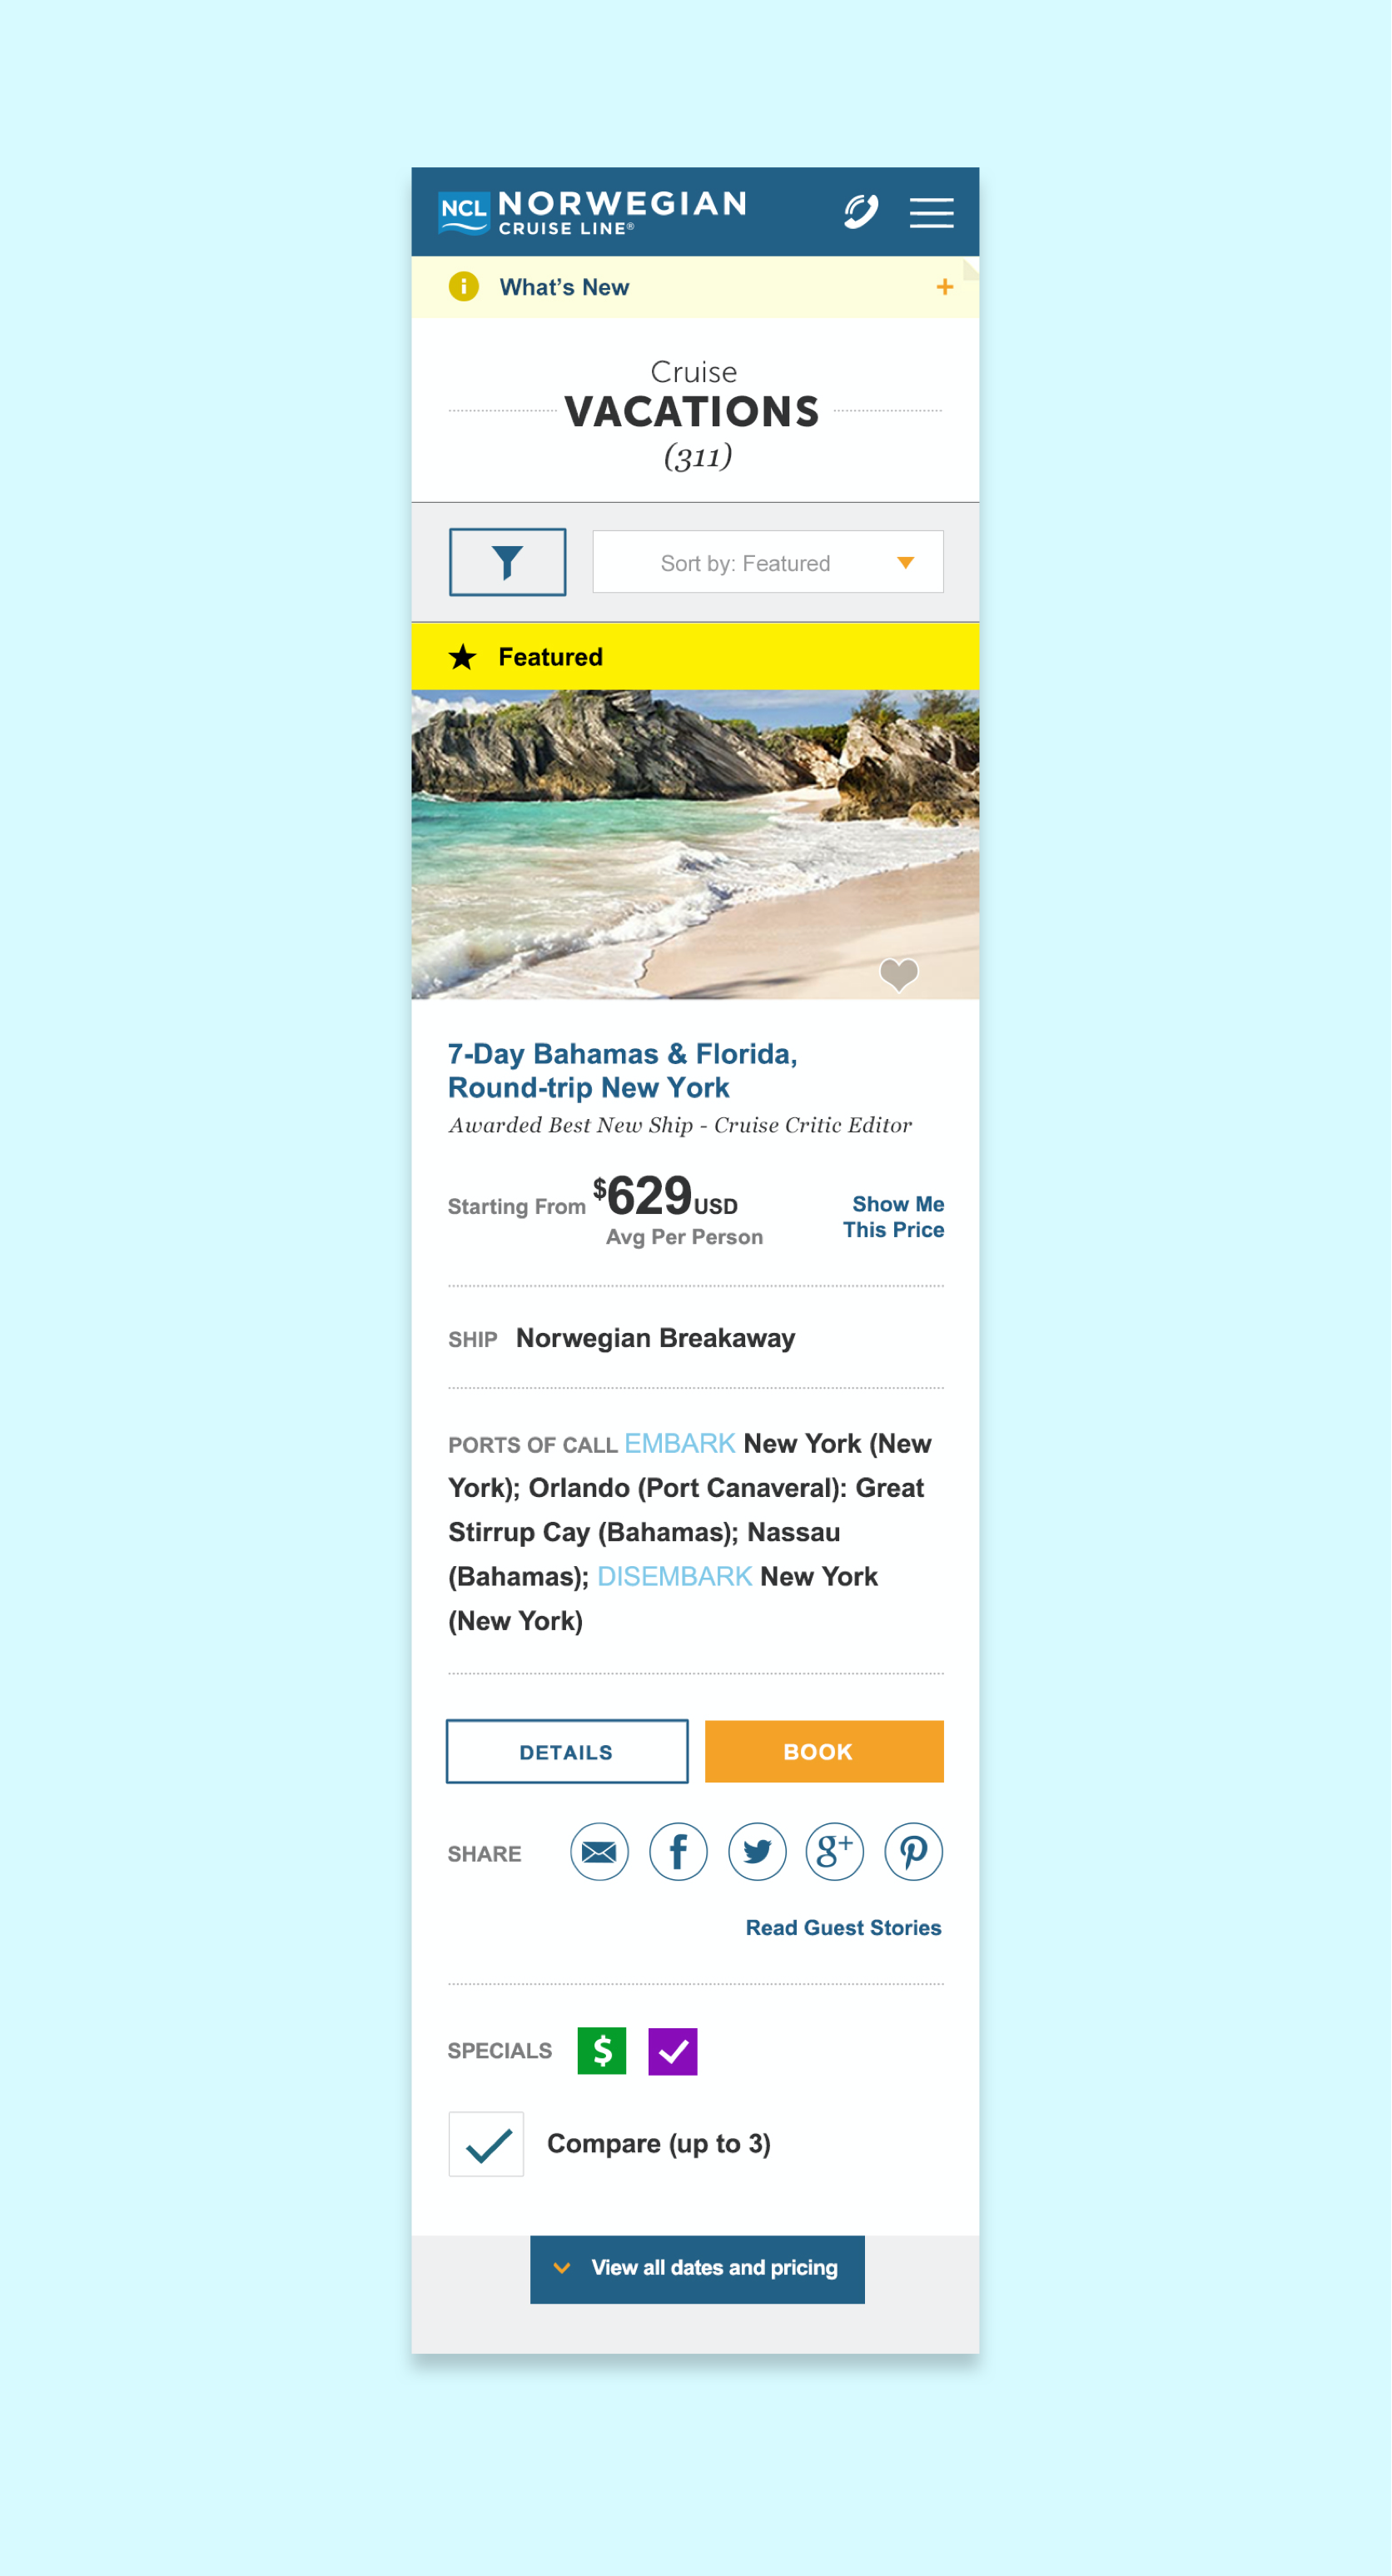 Page view of vacation search results on NCL.com